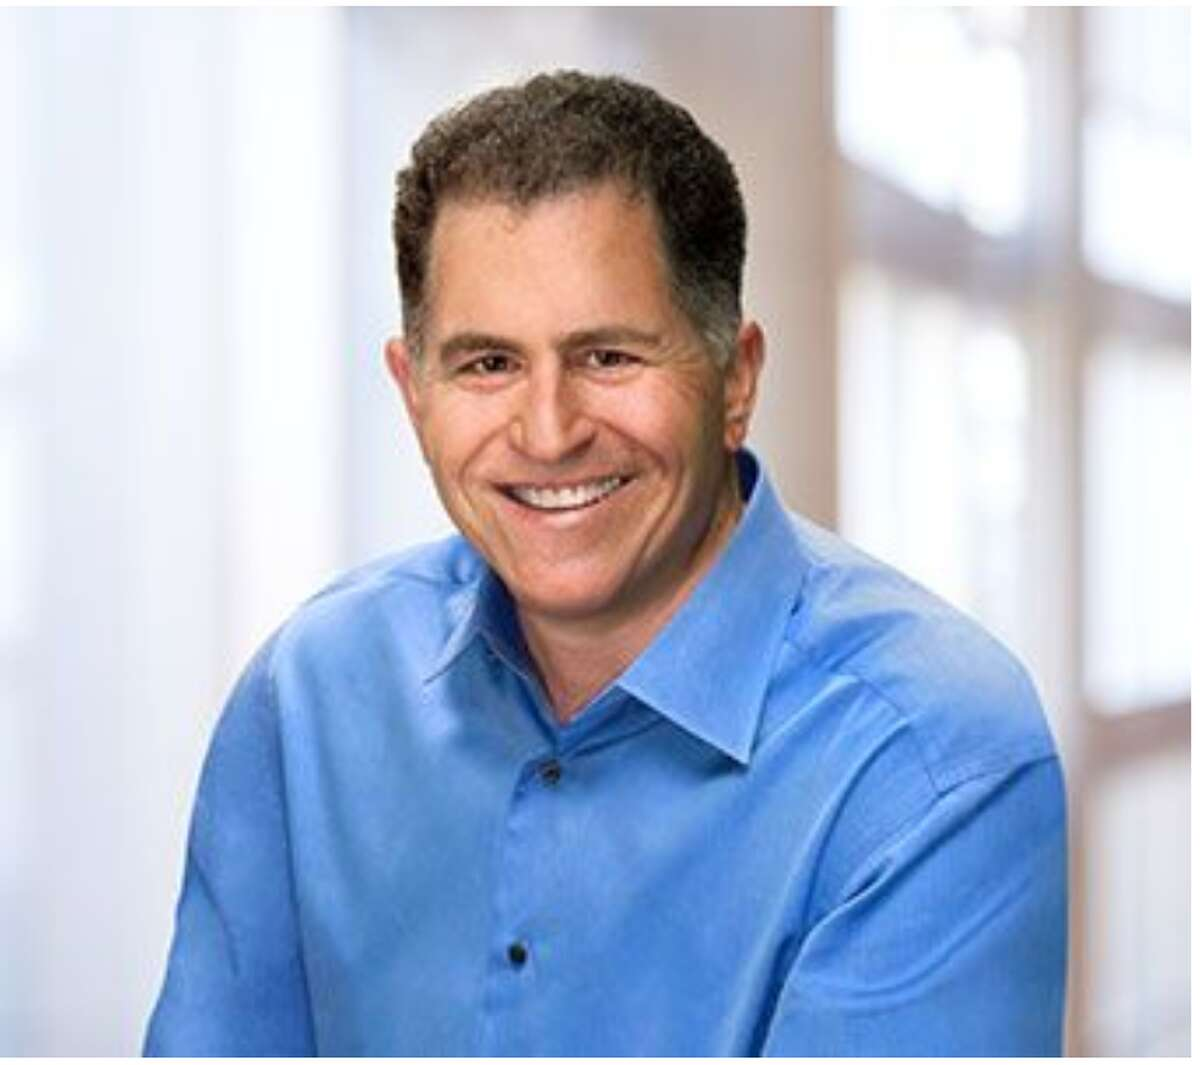 18. Michael Dell Net worth: $35.6 billion Source of wealth:Dell computers Michael Dell, 55, is the chairman and CEO of Dell Technologies. Dell, who still lives in Austin, started out selling computers out of his freshman dorm room at the University of Texas.